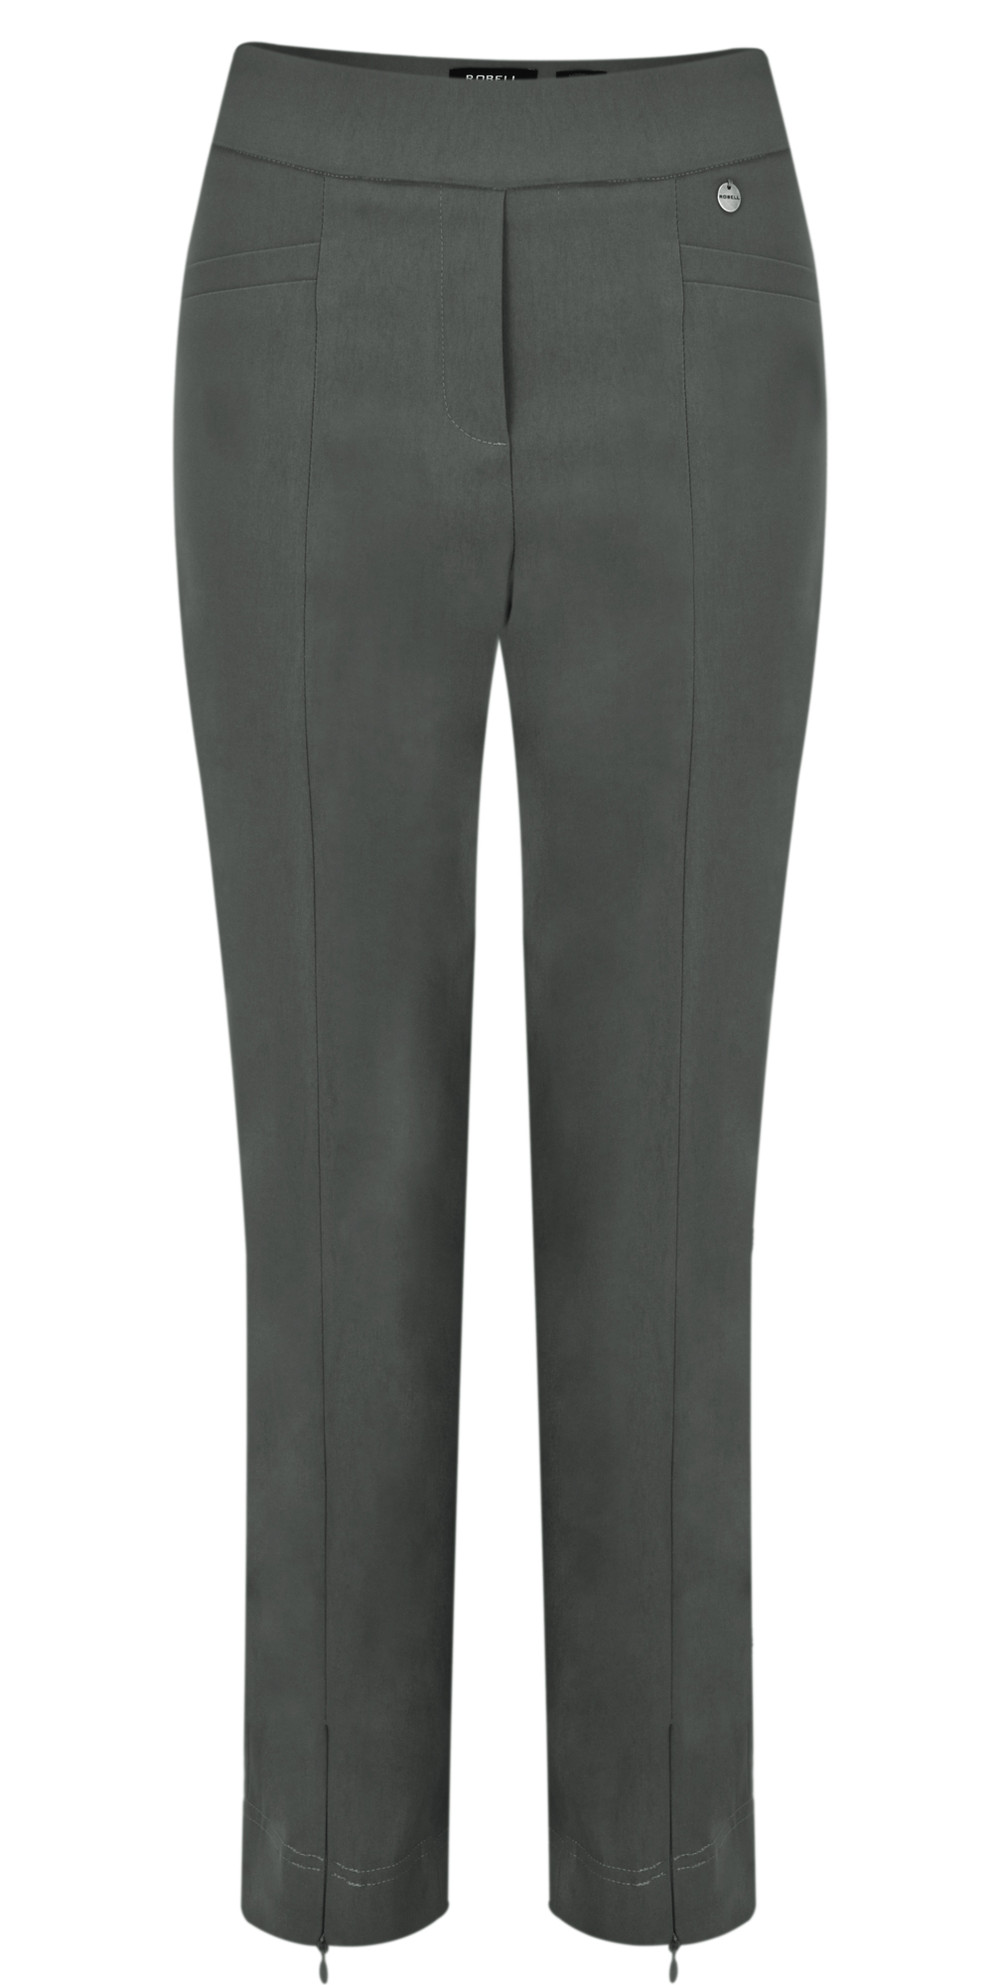 Nena 09 Stretch Ankle Length Trouser main image